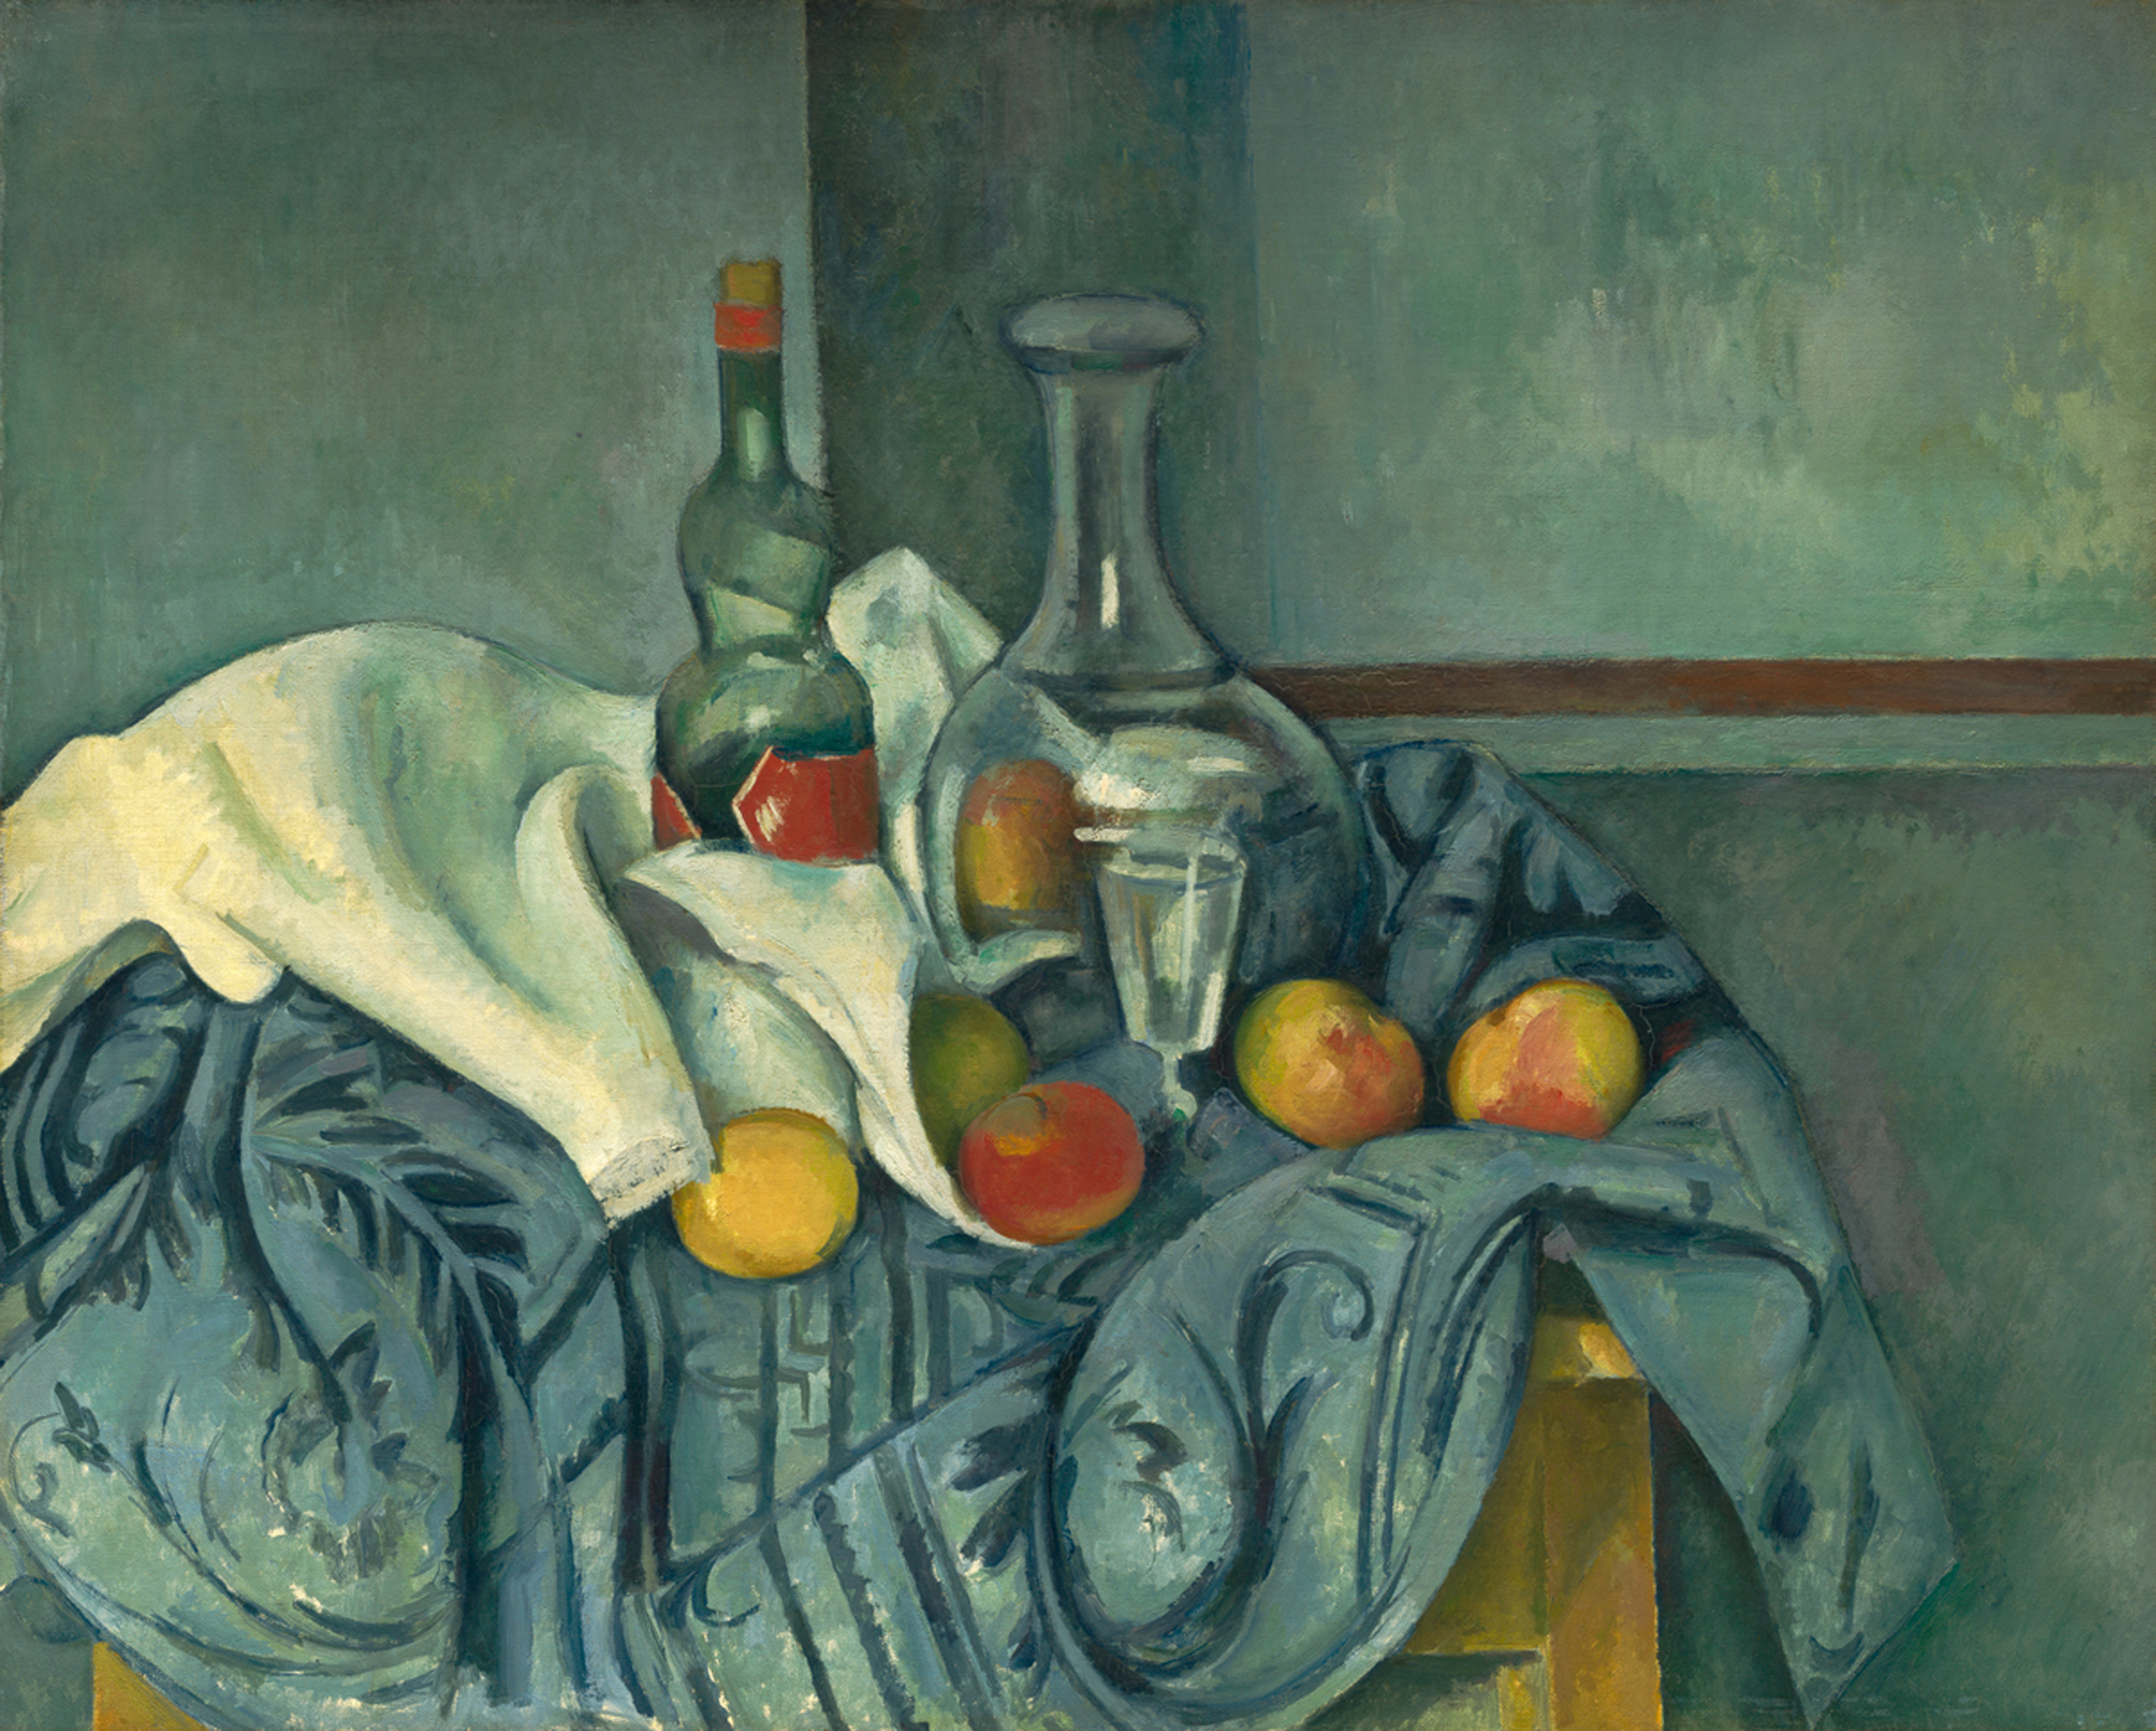 Paul Cézanne: Le Carafe, 1893-95 (Tafel 43) © National Gallery of Art, Washington D.C. / Chester Dale Collection 1963.10.104 / courtesy Schirmer/Mosel